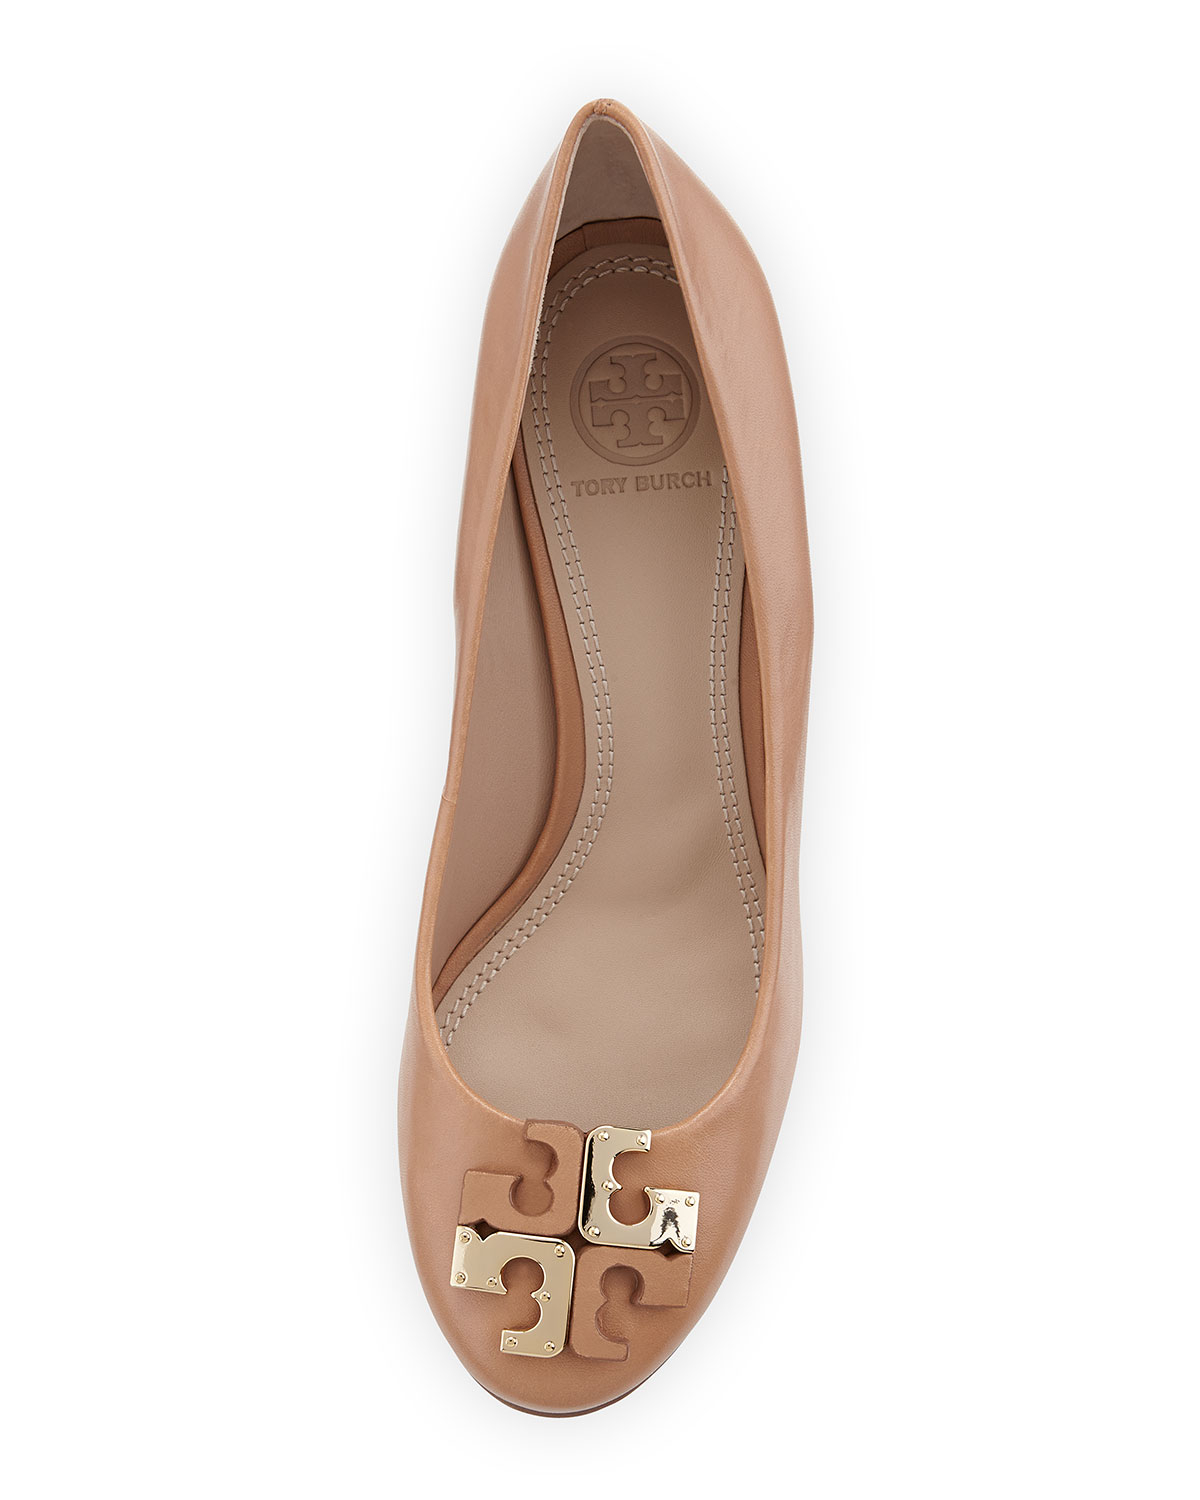 e3a90cbaafdc37 Lyst - Tory Burch Lowell New Logo Wedge Pump in Brown